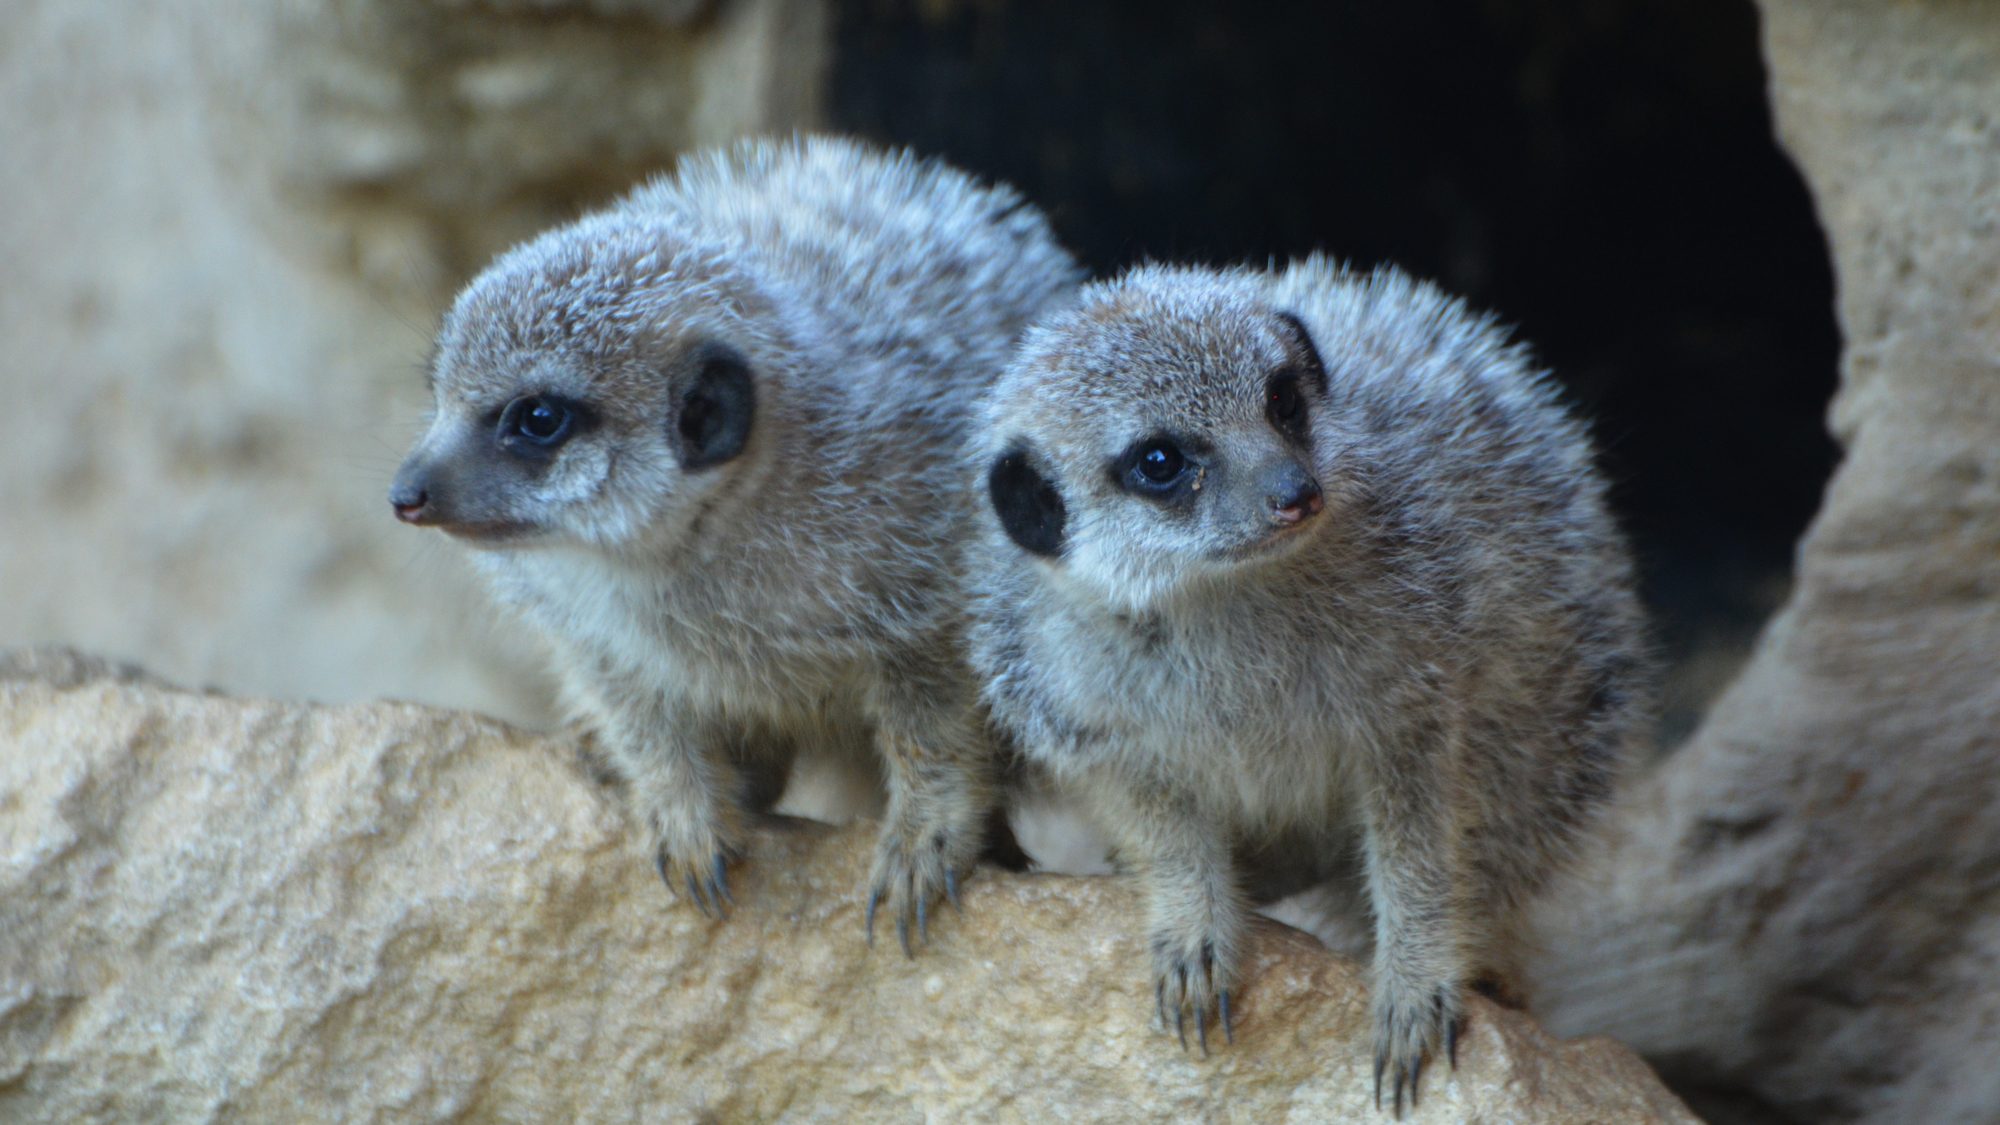 Baby Meerkats at Zsl London